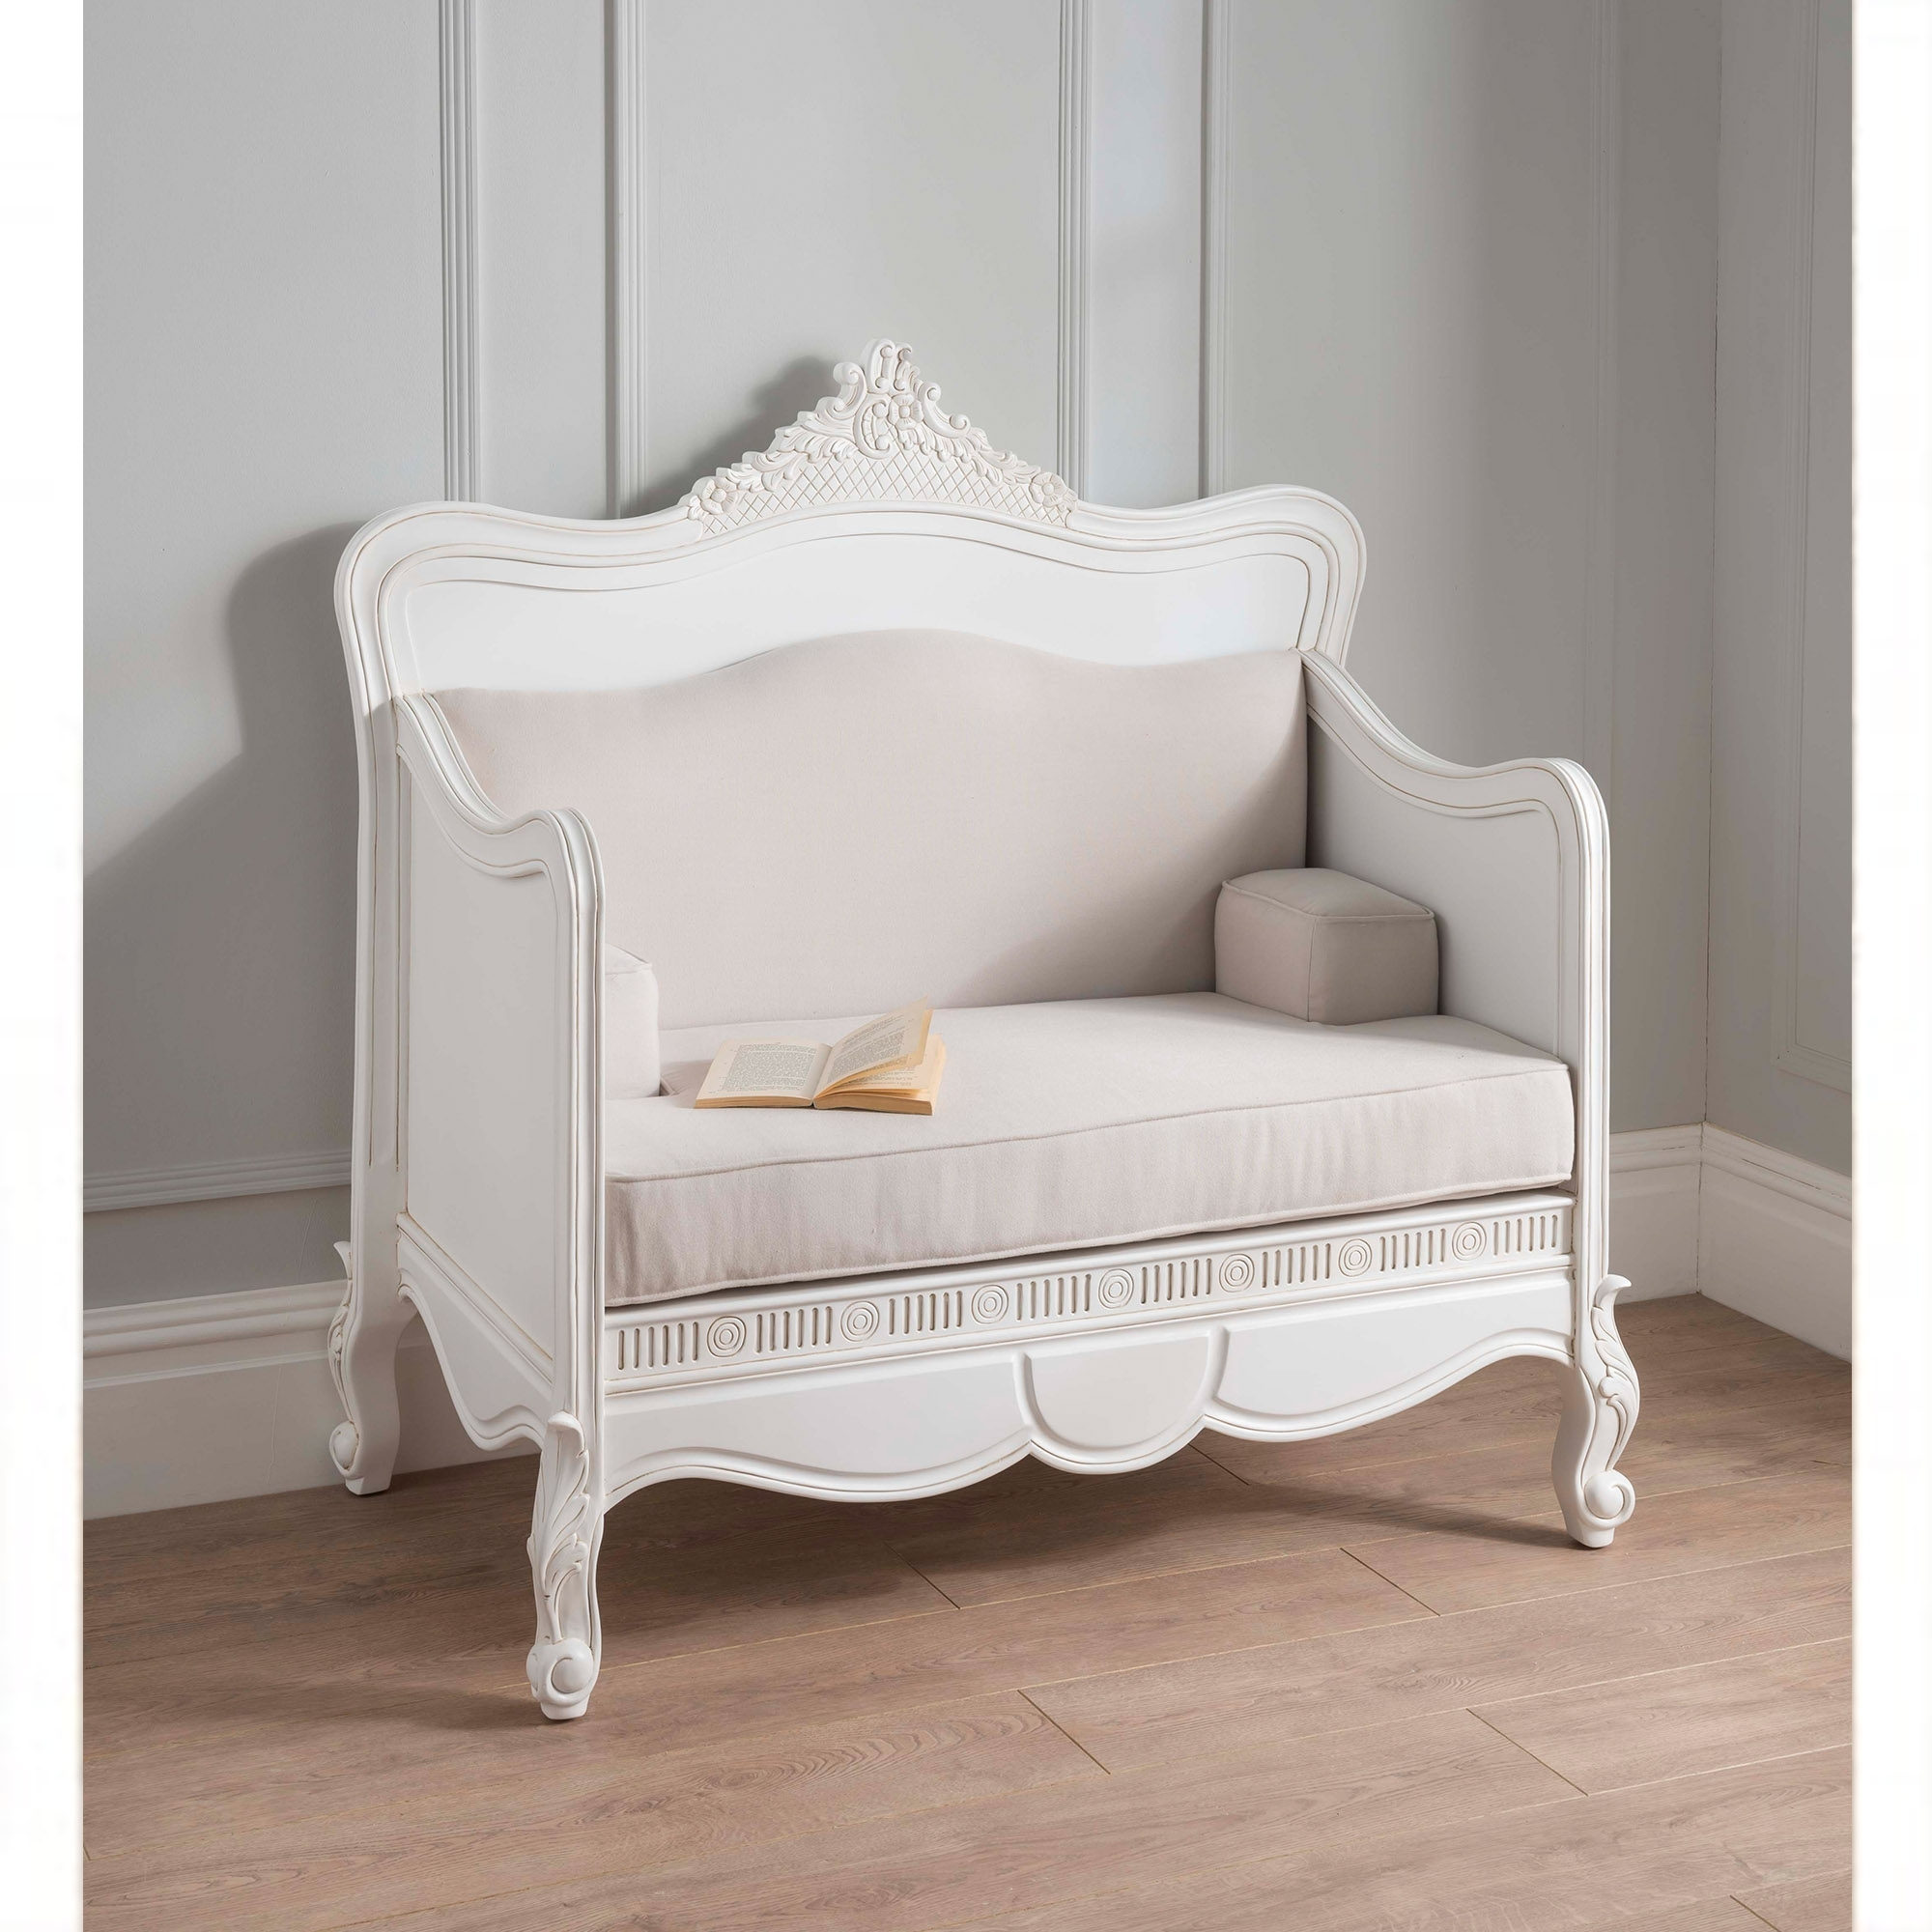 Antique French Style Bench Shabby Chic Furniture Online